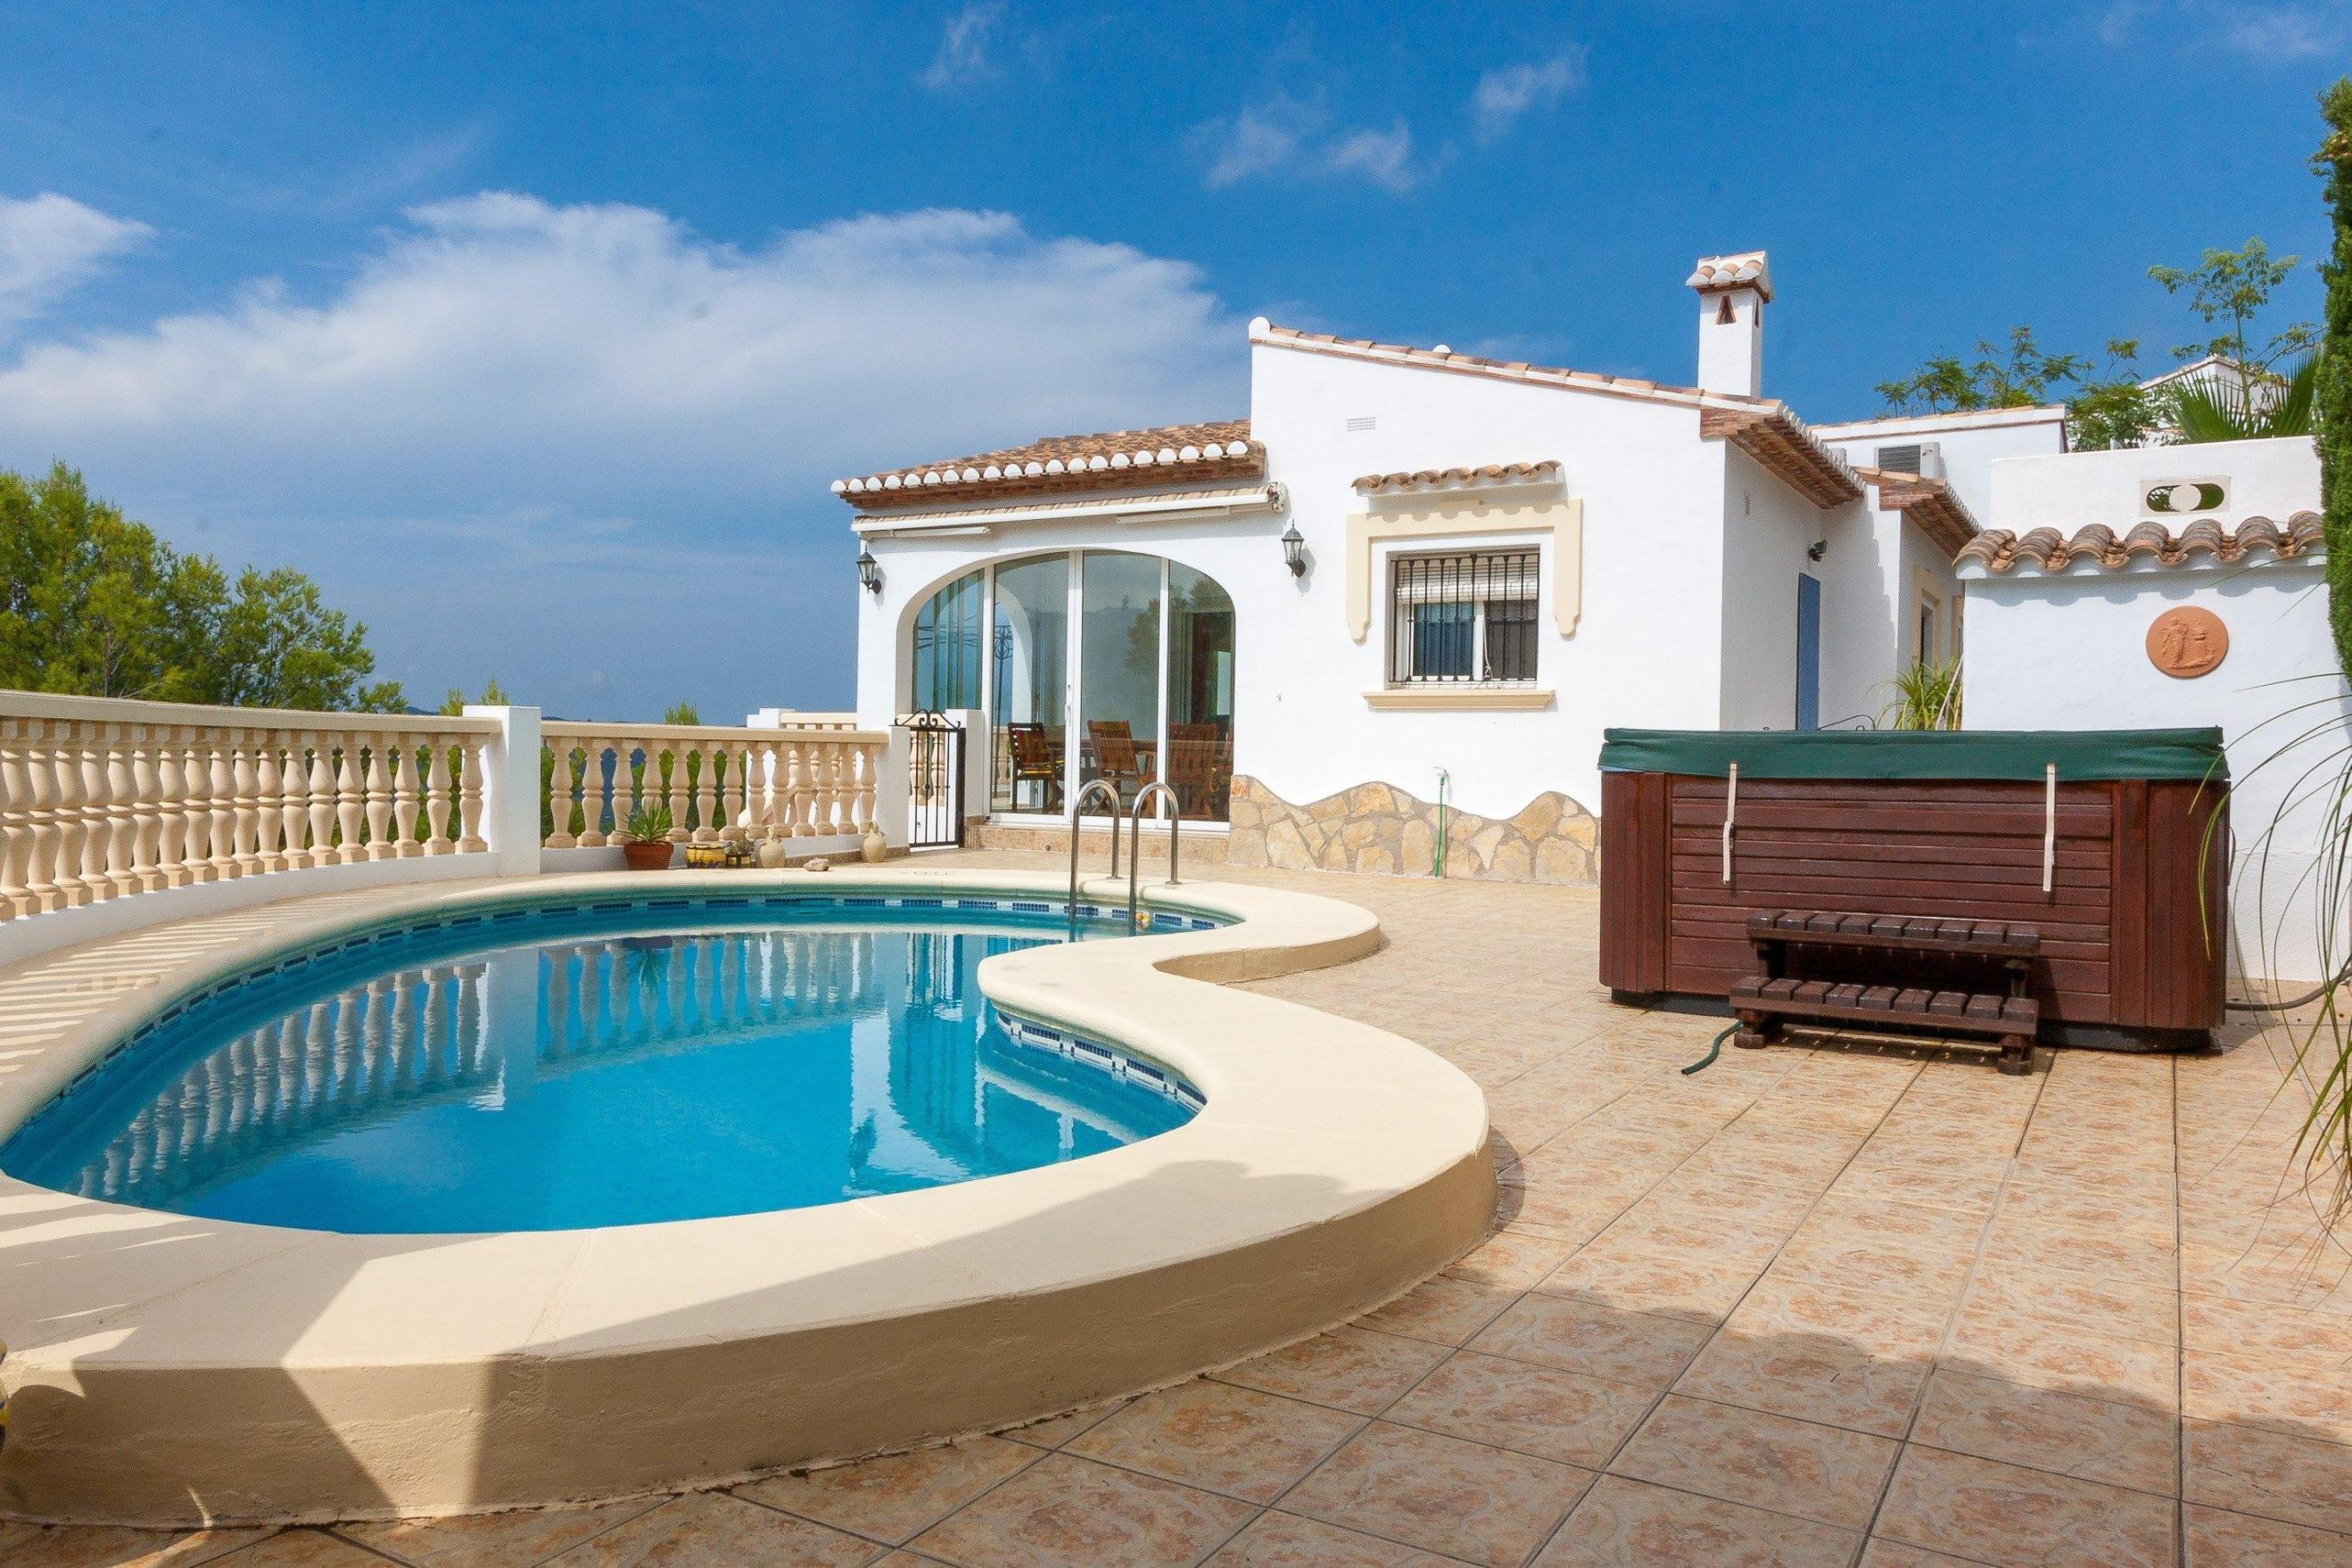 5 Bedroom Villa in Orba